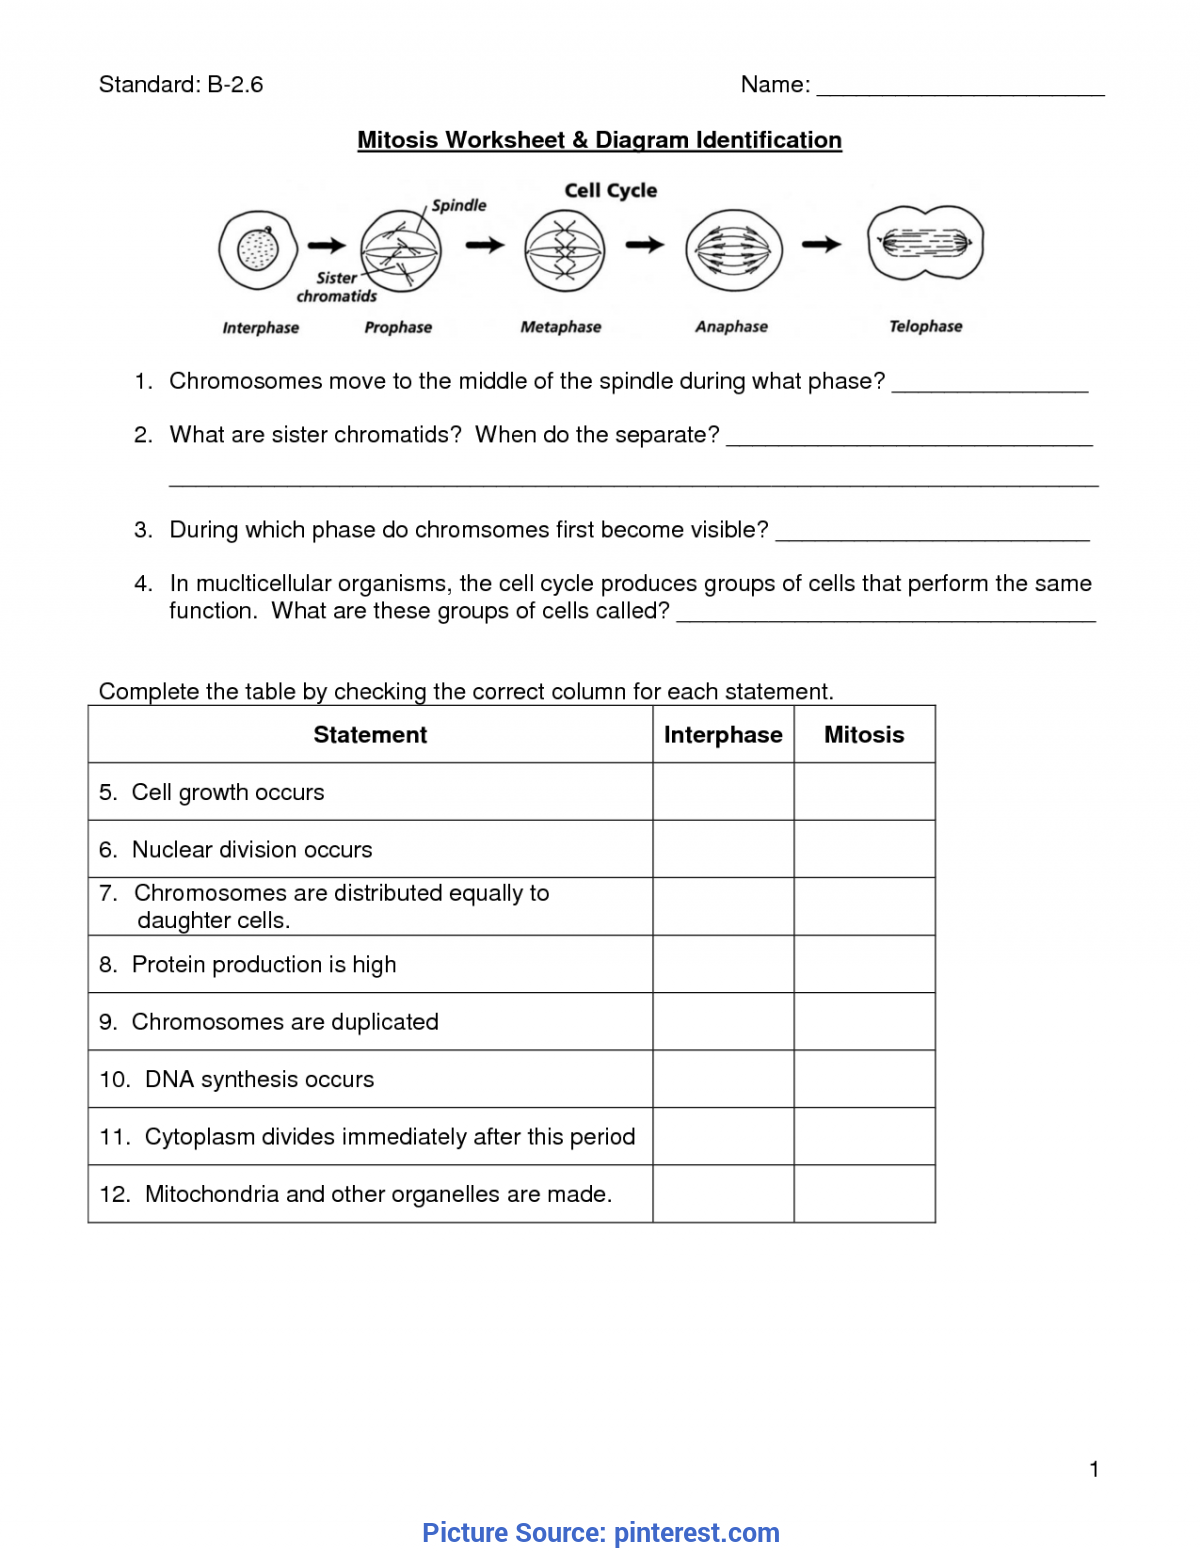 Mitosis Worksheets For Middle School